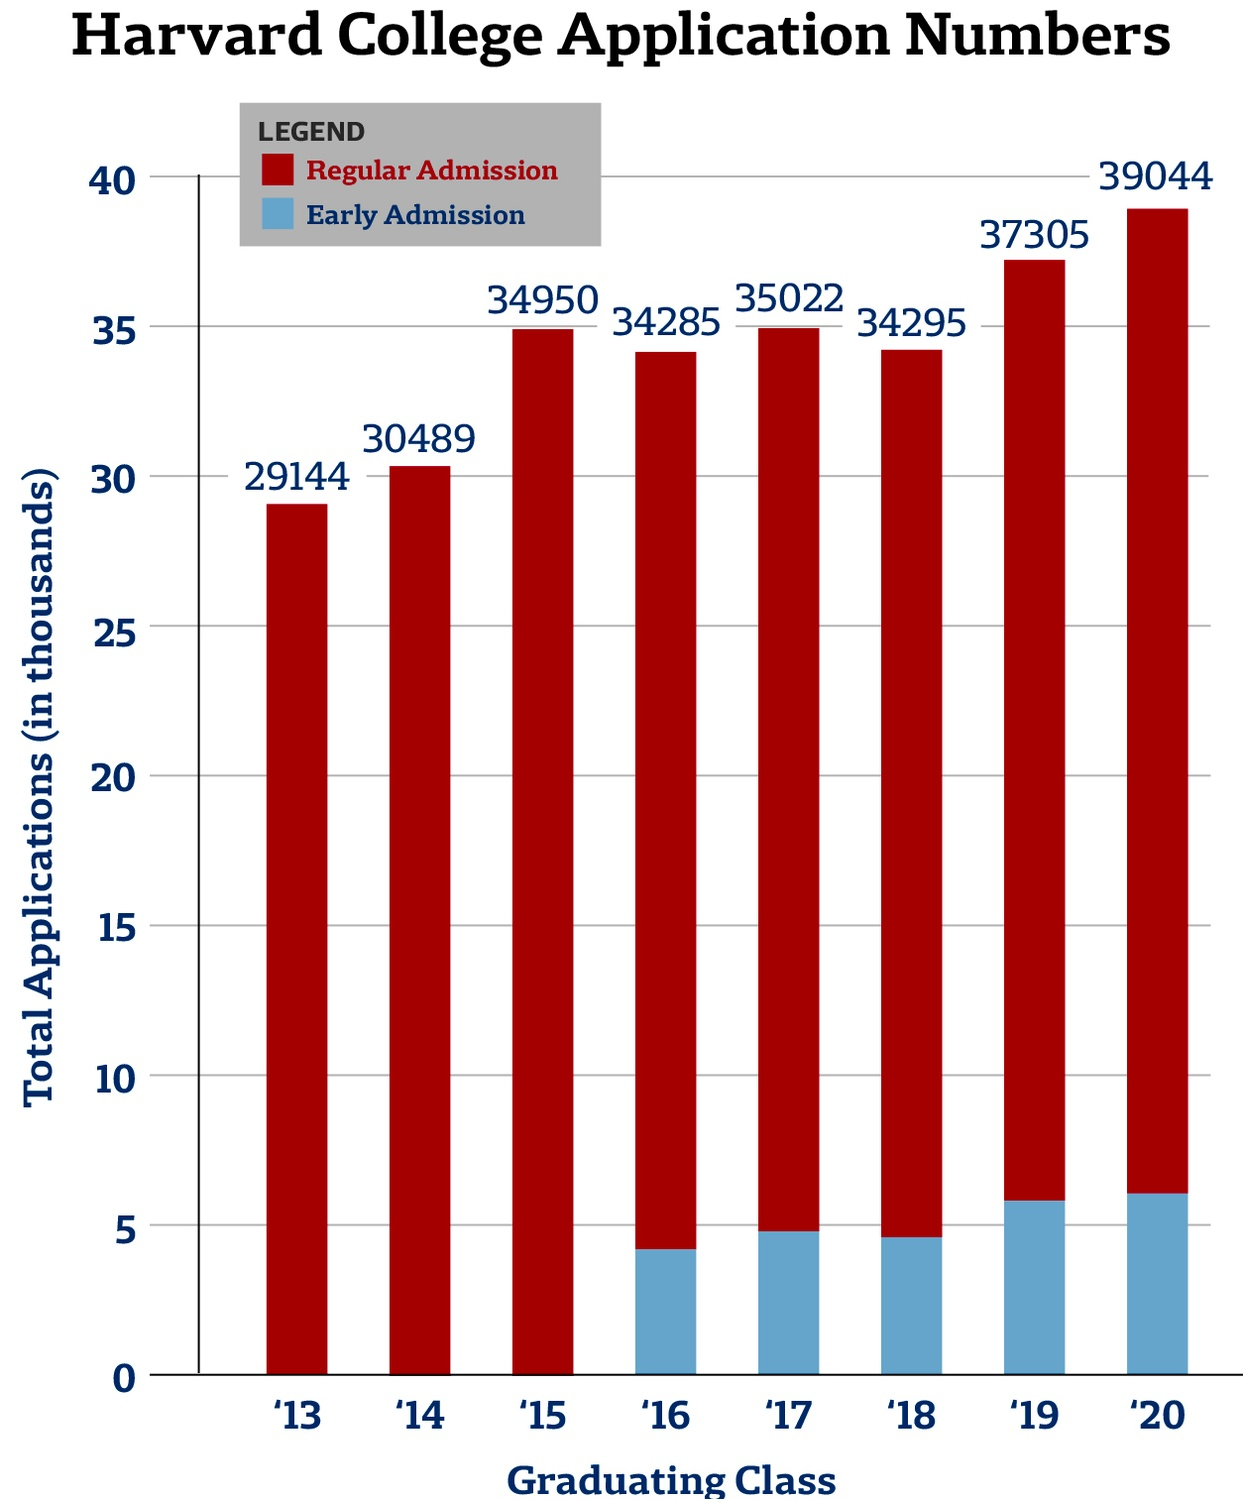 Harvard College Application Numbers Graph